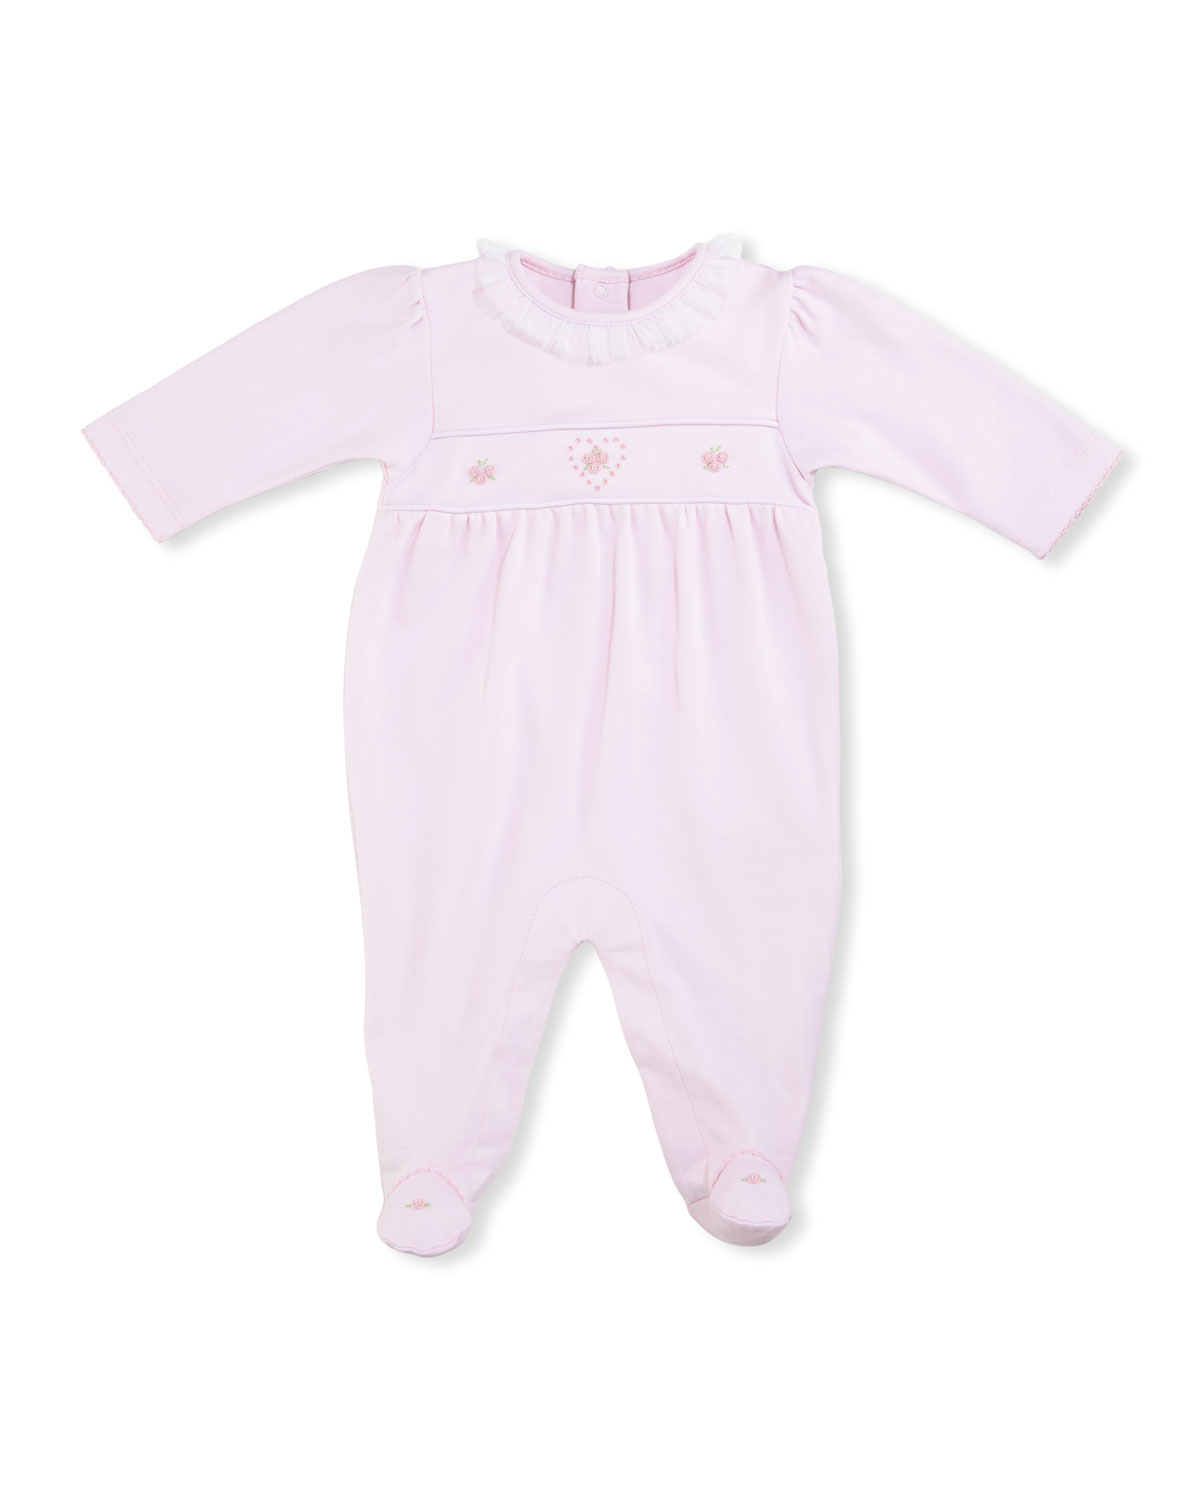 Heart to Heart Footie Pajamas, Pink, Size 0-9 Months